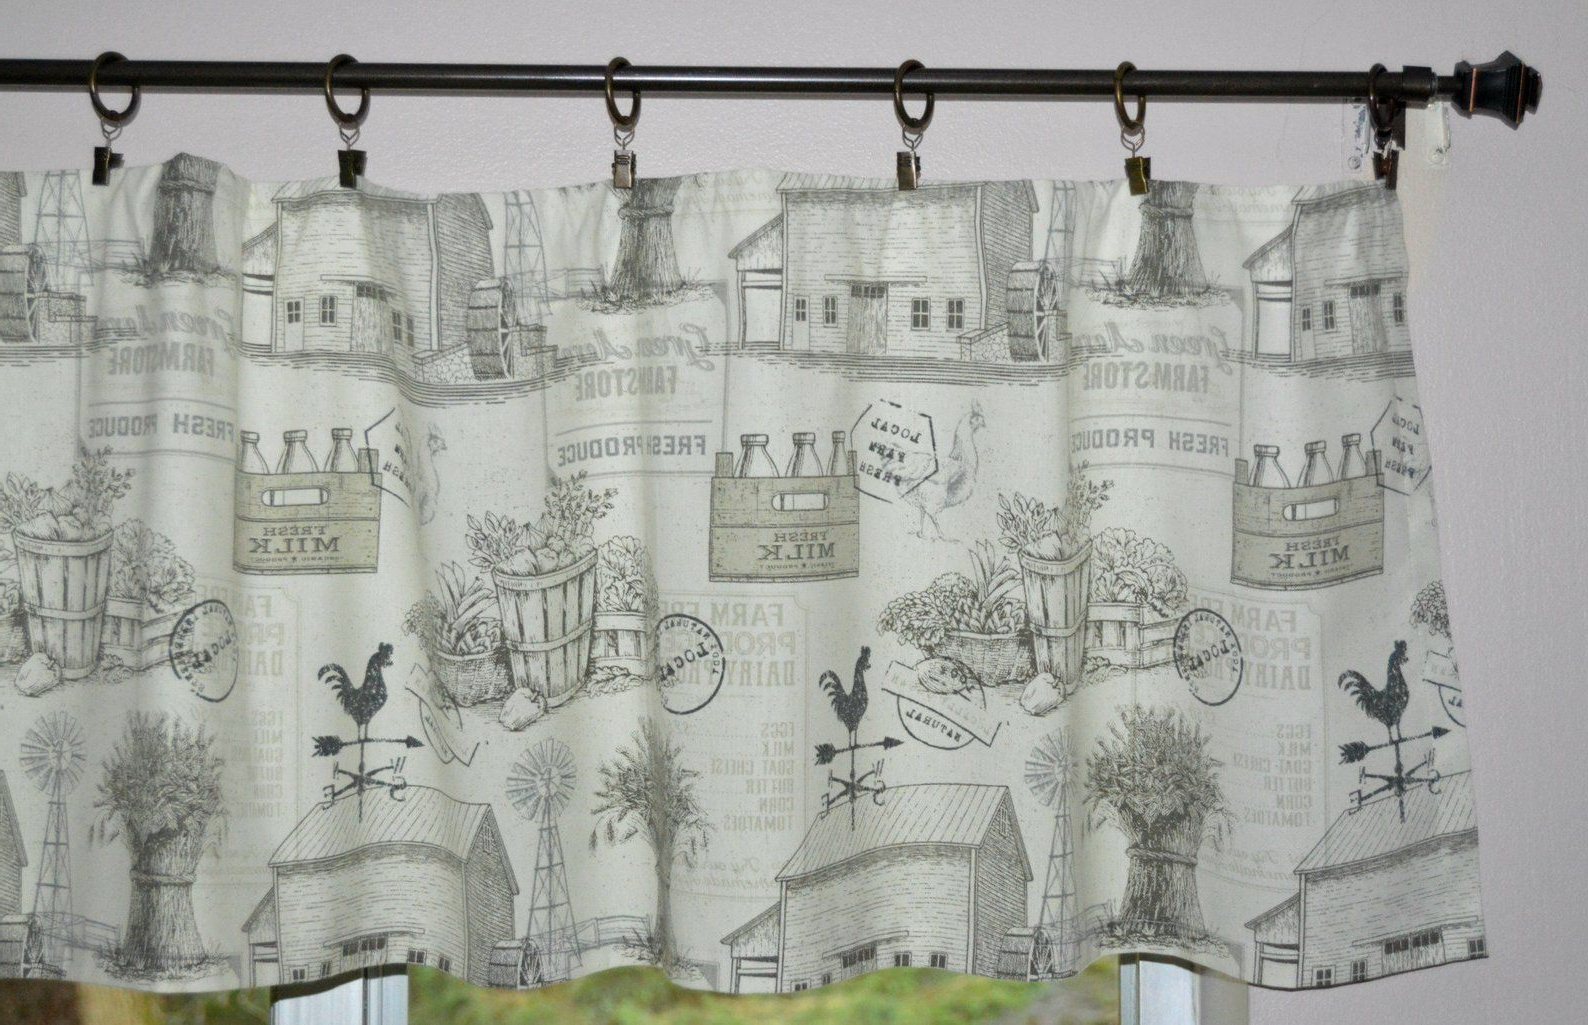 20 ideas of barnyard buffalo check rooster window valances on country farmhouse exterior paint colors 2021 id=92188